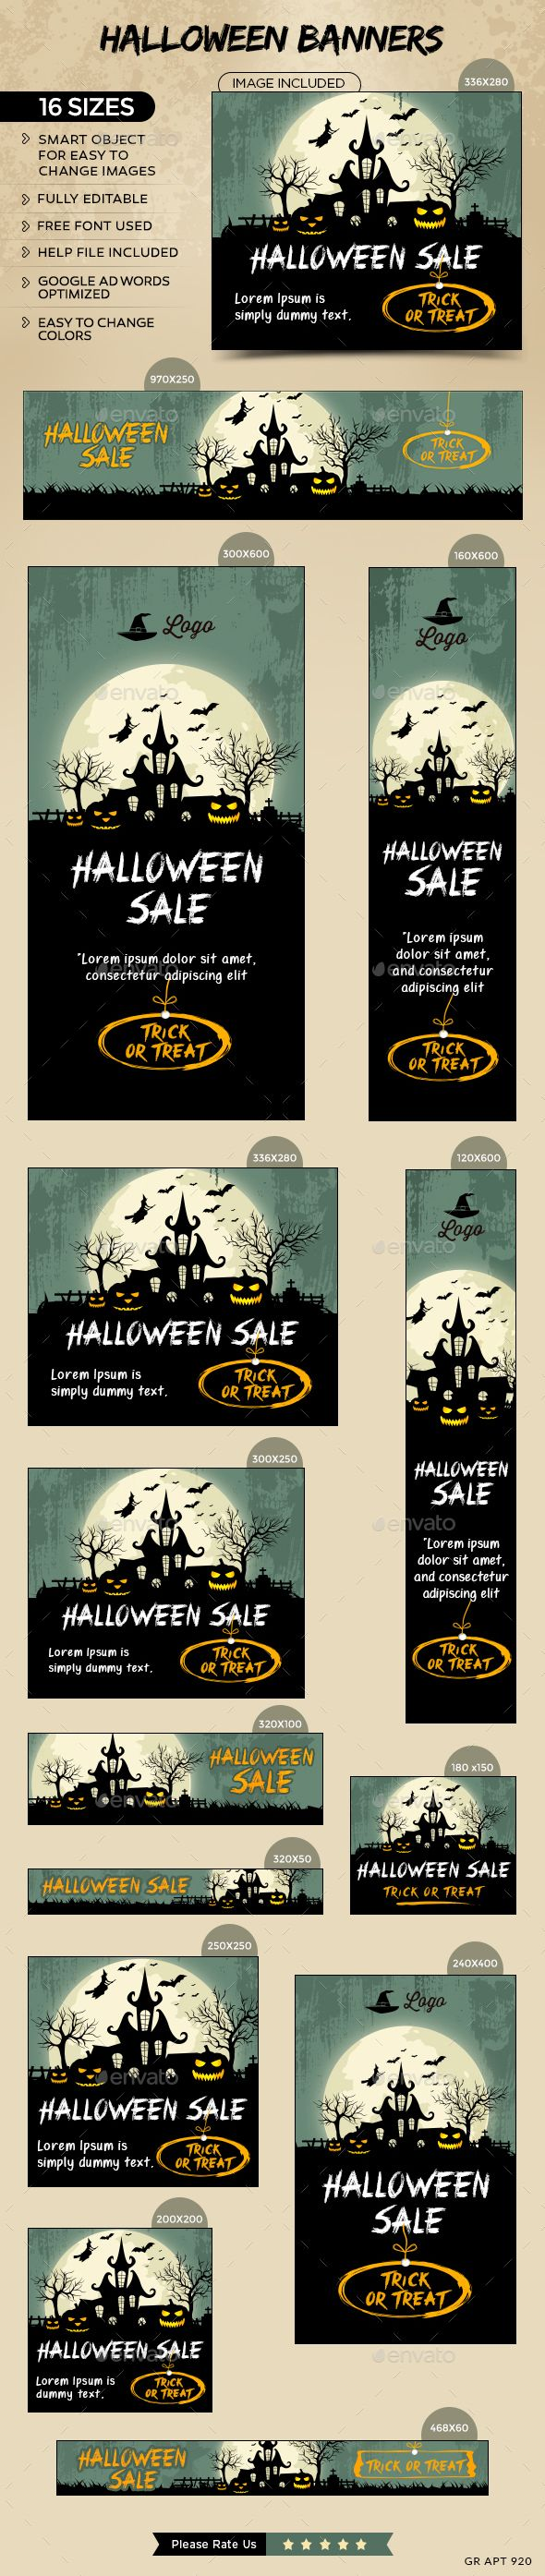 Halloween Sale Web Banners Template PSD #design #ad Download: http://graphicriver.net/item/halloween-sale-banners/13139779?ref=ksioks